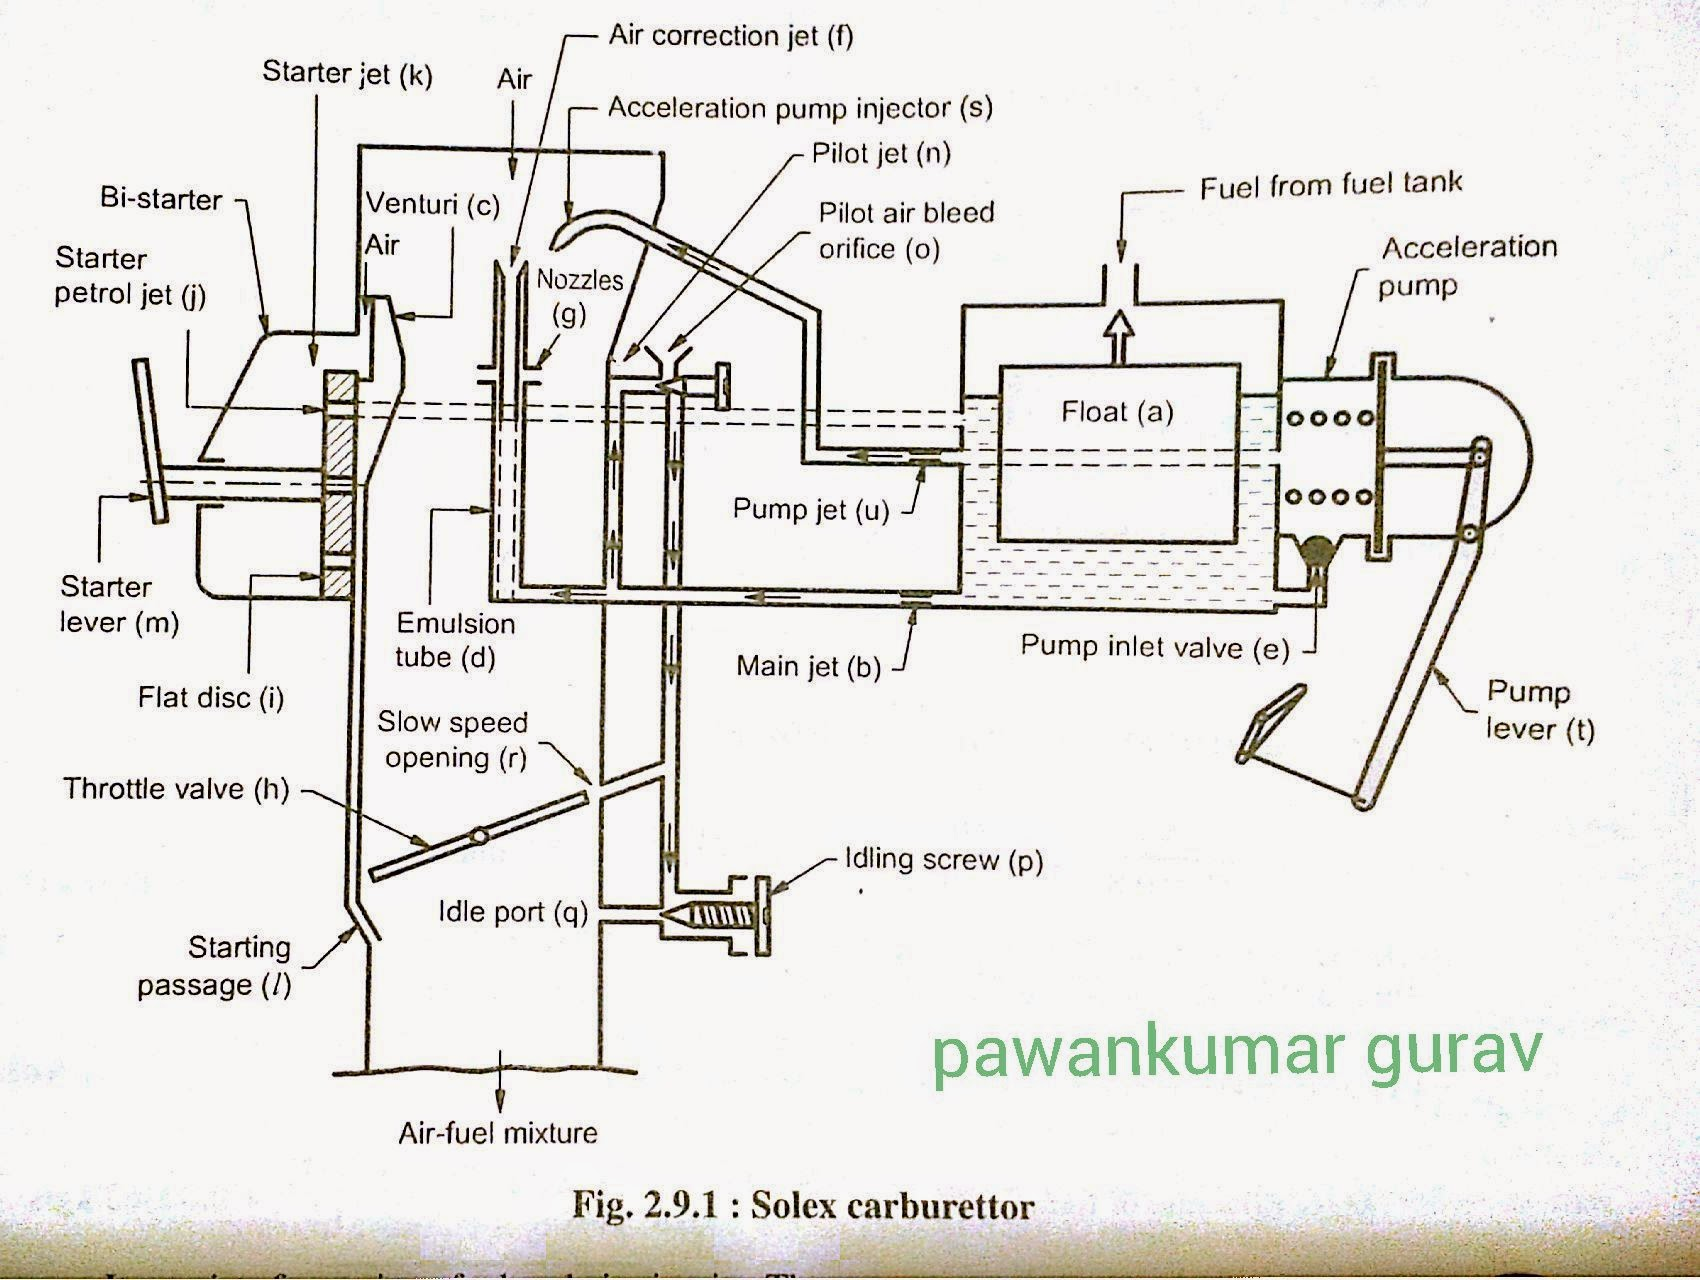 Solex Carburetor Diagram Wiring Diagrams Details About Bmw E46 Instrument Cluster Panel Circuit Board 6911308